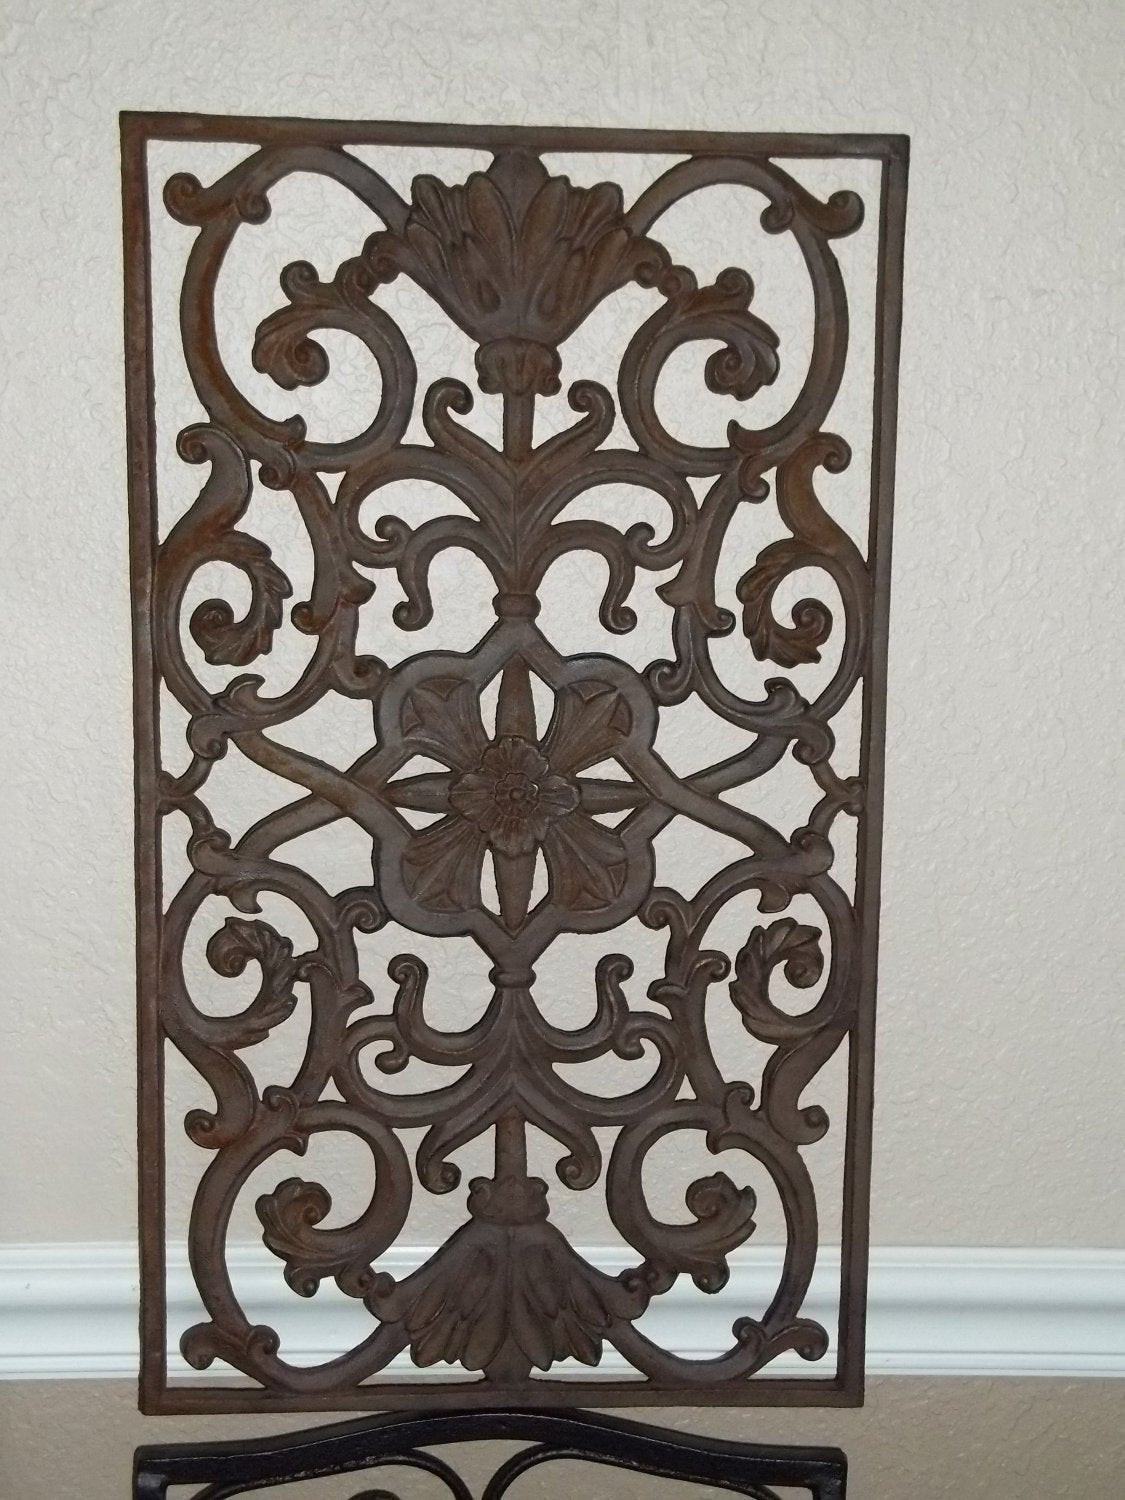 Best ideas about Wrought Iron Wall Art . Save or Pin Wrought Iron Rustic Wall Art Now.